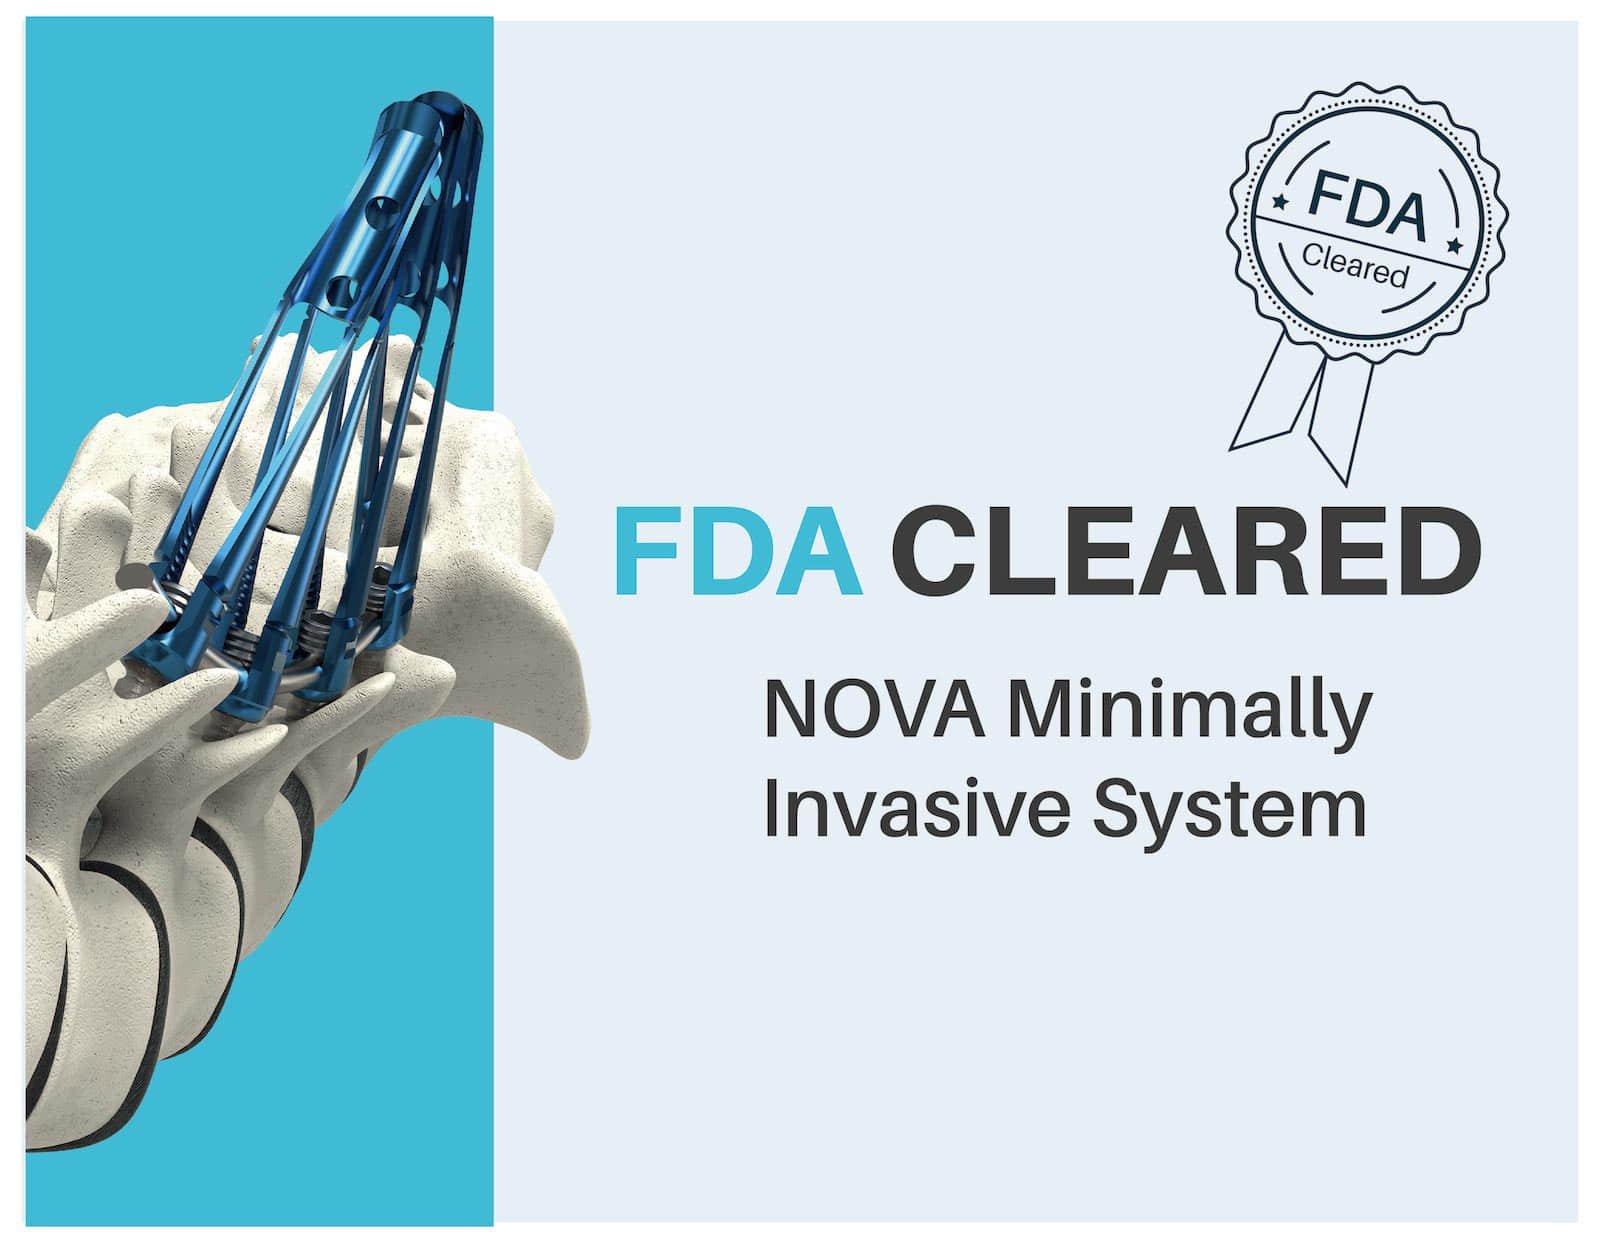 FDA Approves NOVA MIS System